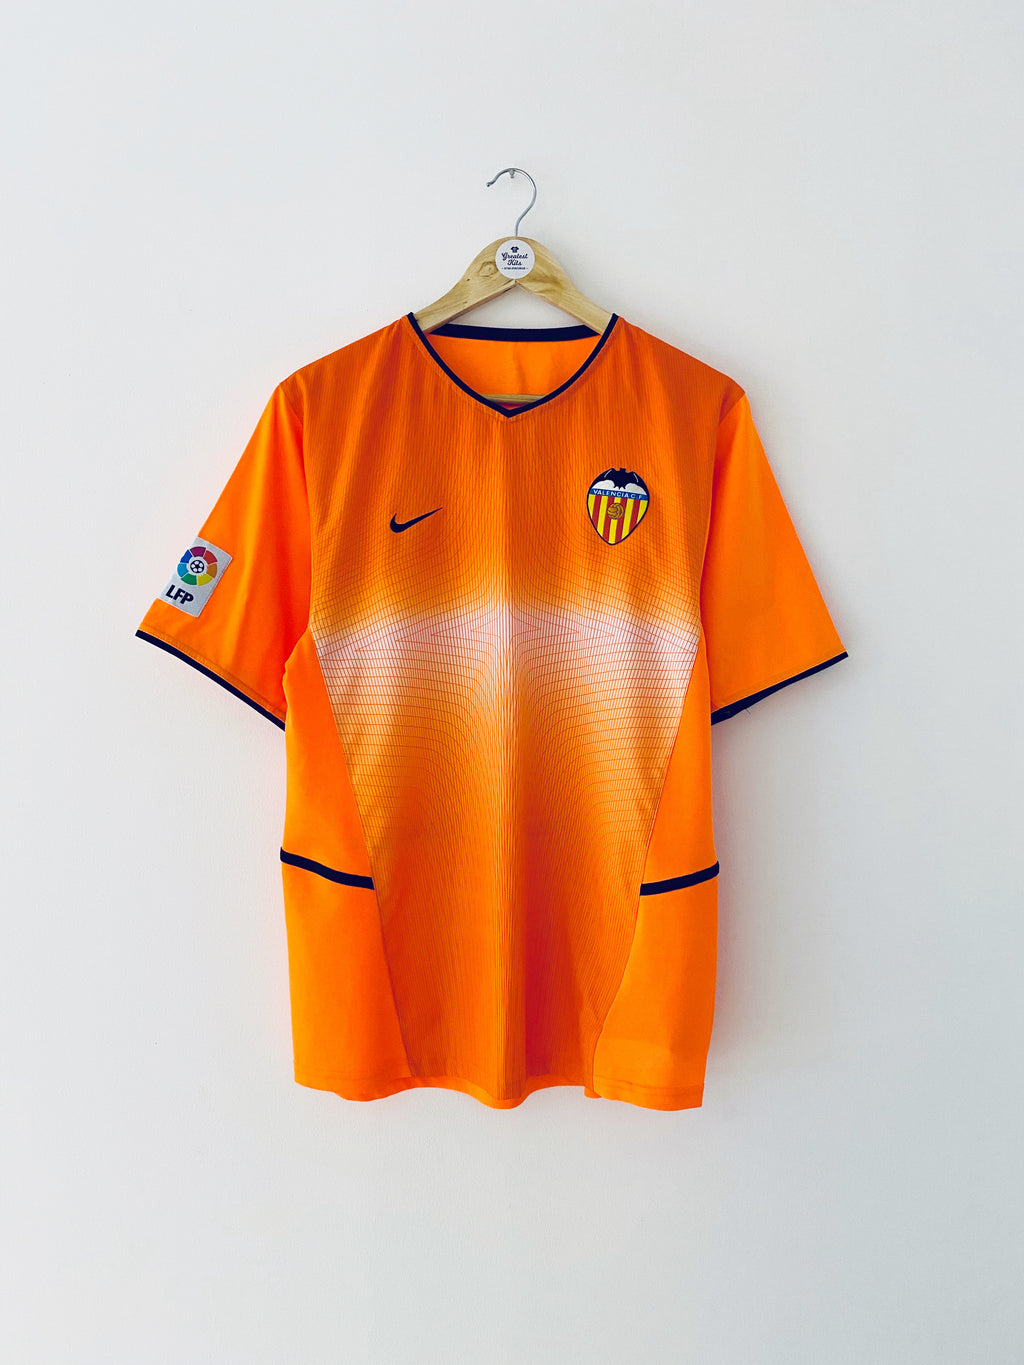 2002/03 Valencia Away Shirt (M) 9/10